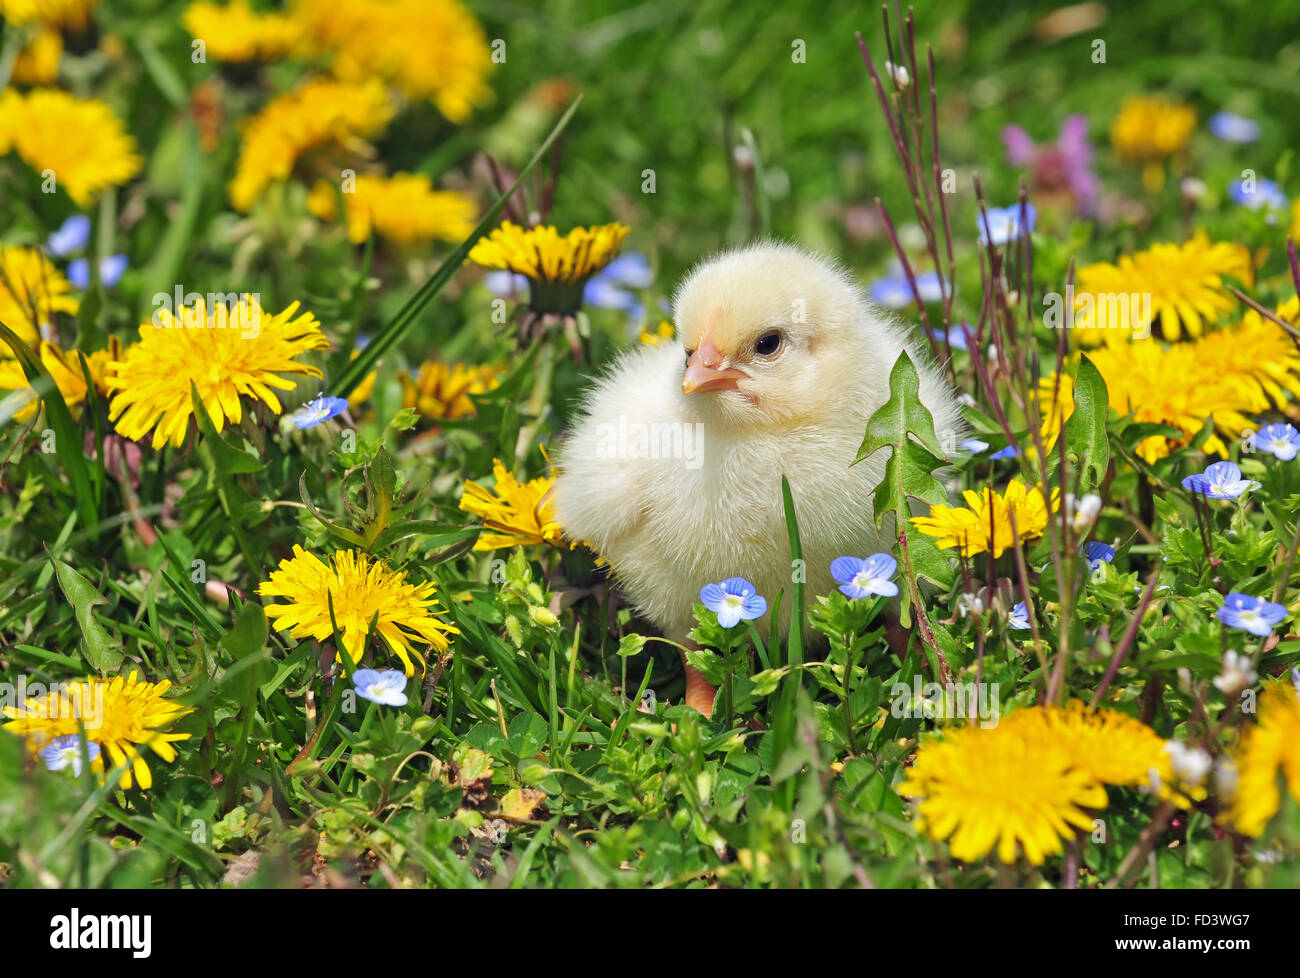 Young chicken in a grass - Stock Image